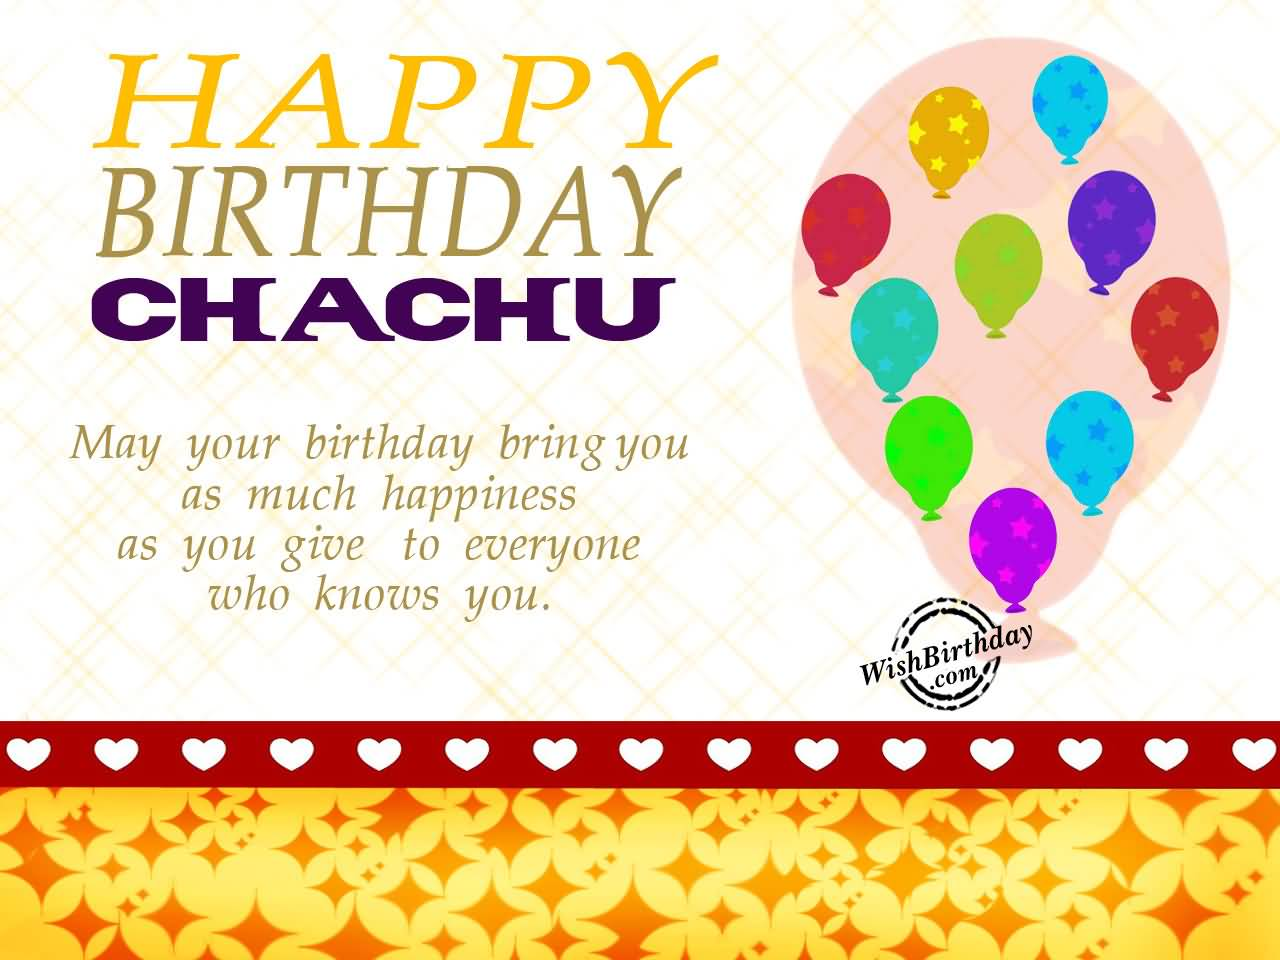 happy birthday chachu your birthday bring you as much